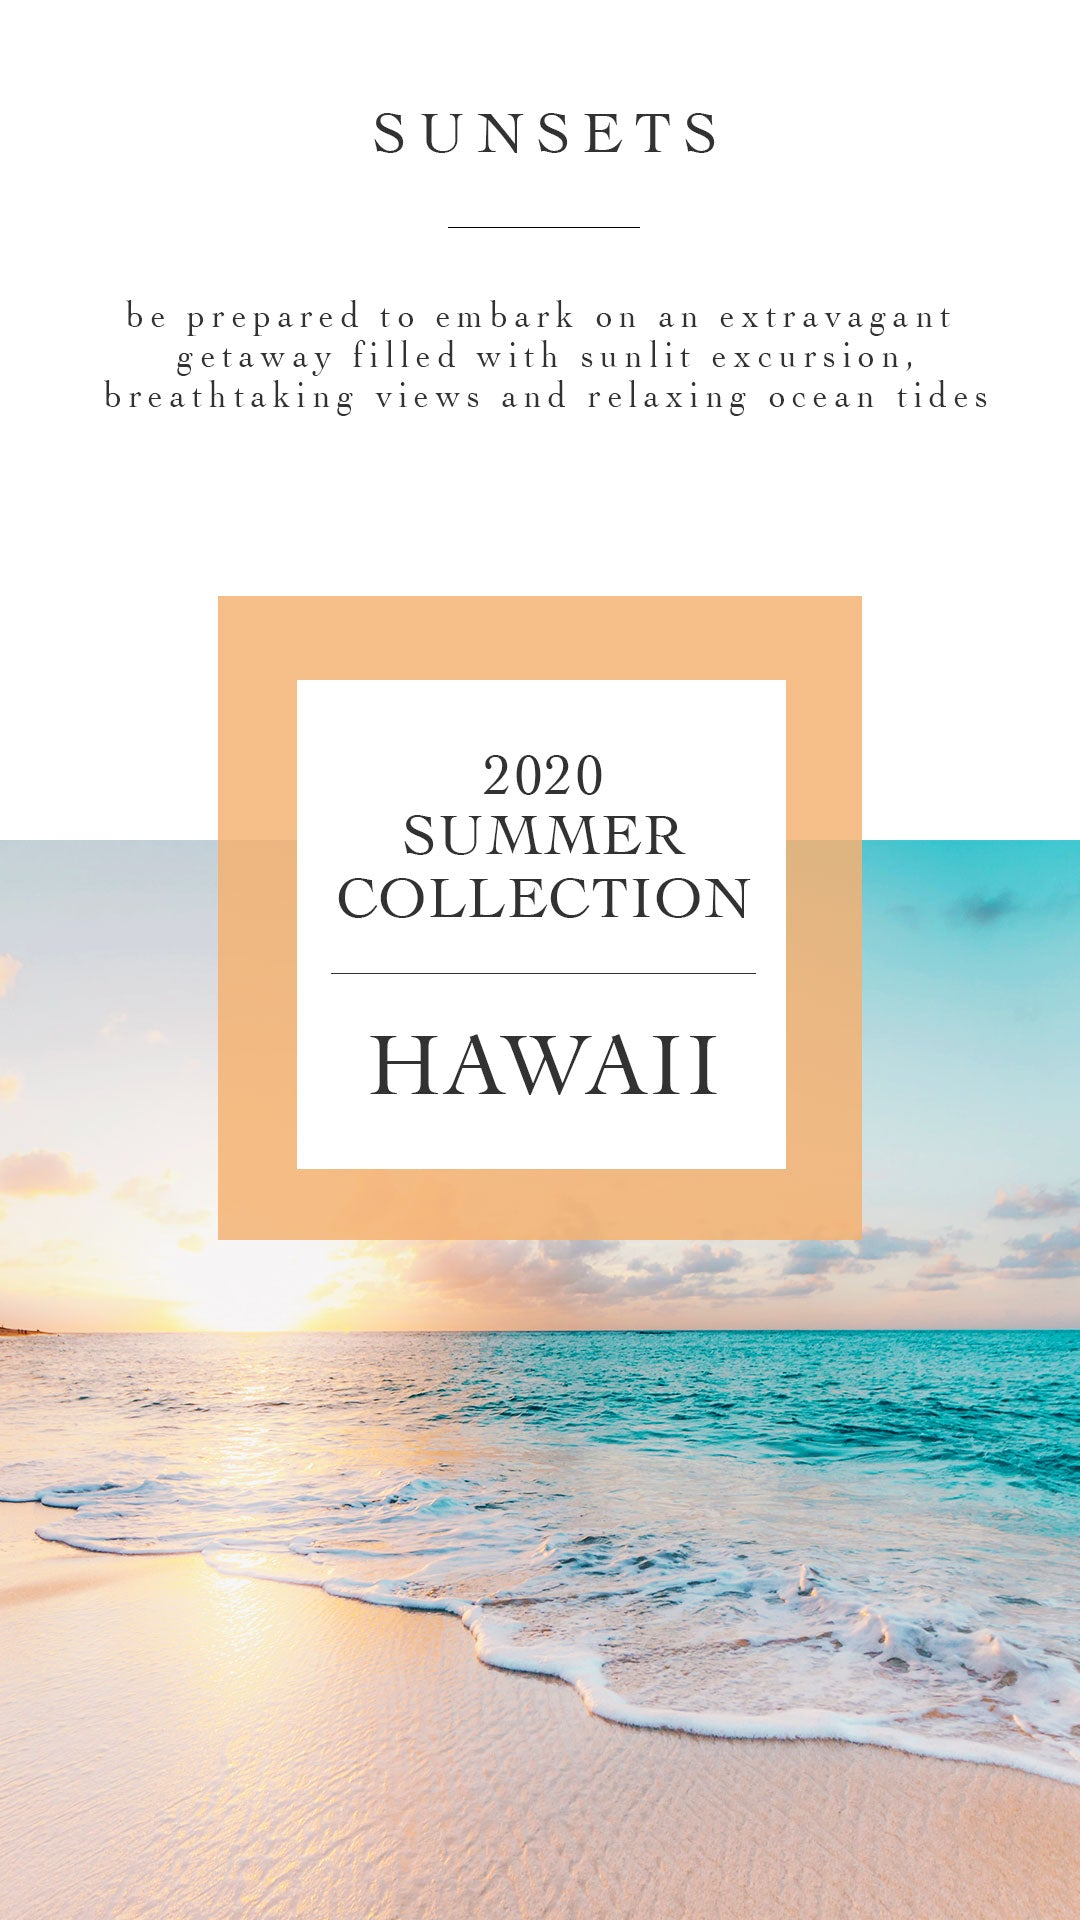 https://sunsetsinc.com/pages/sunsets-separates-2020-collection